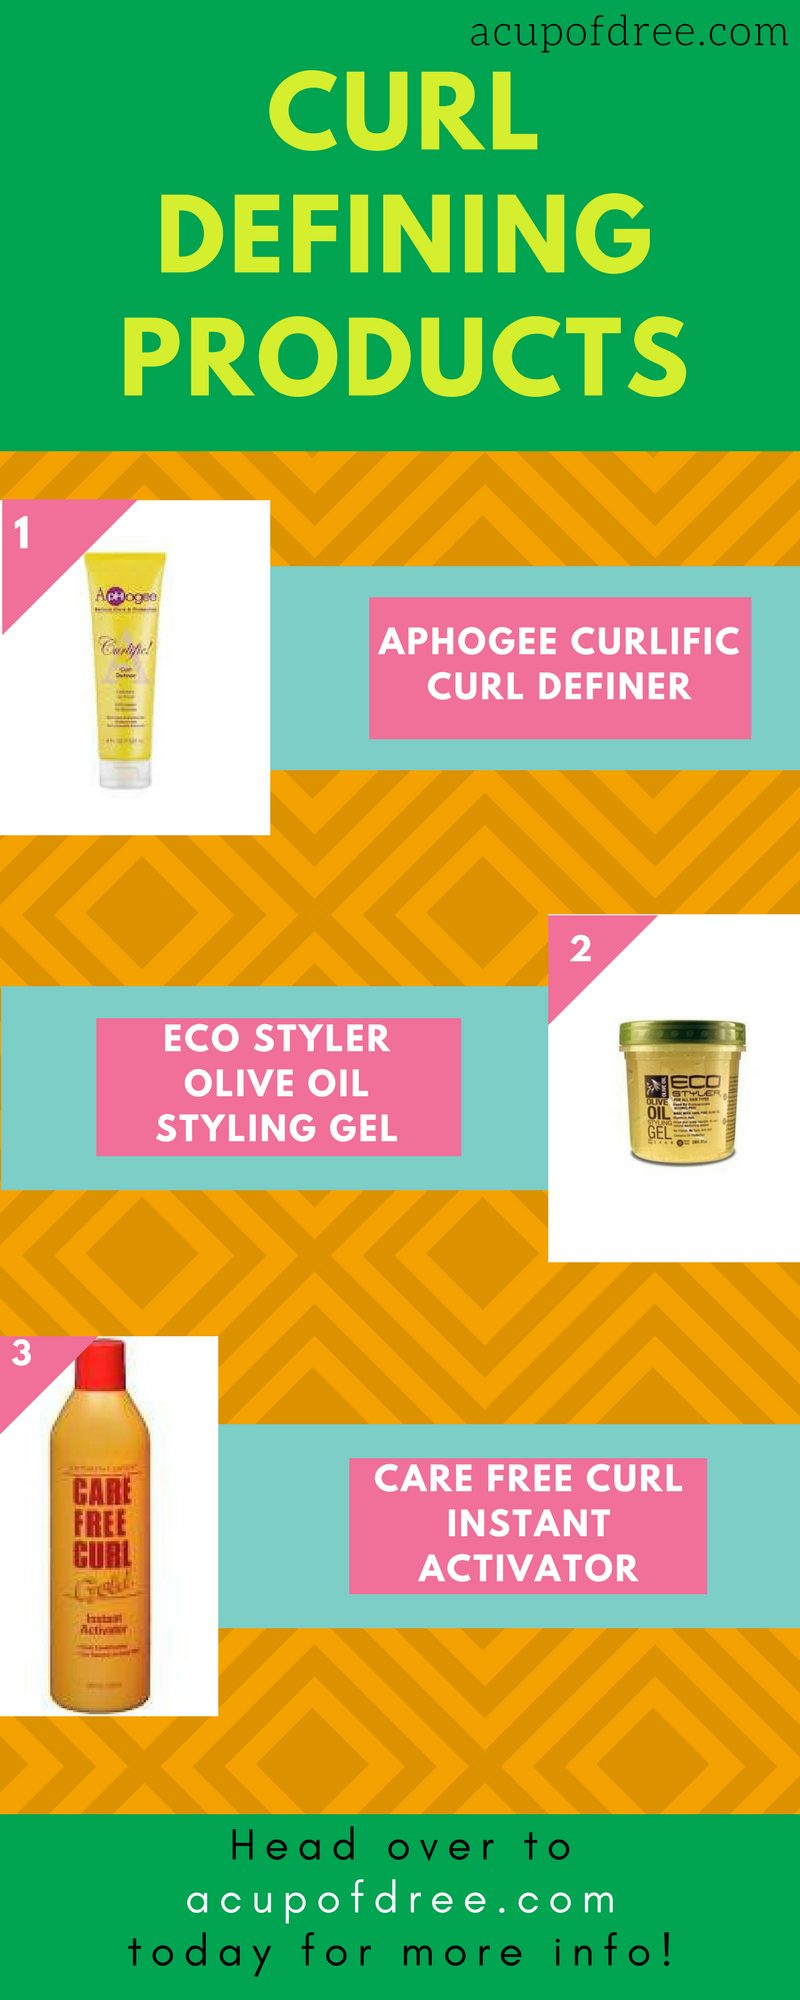 Make those curls pop by applying these 3 products.   #hair #naturalhair #naturalbeauty #curlyhair #curls #curldefiner #product